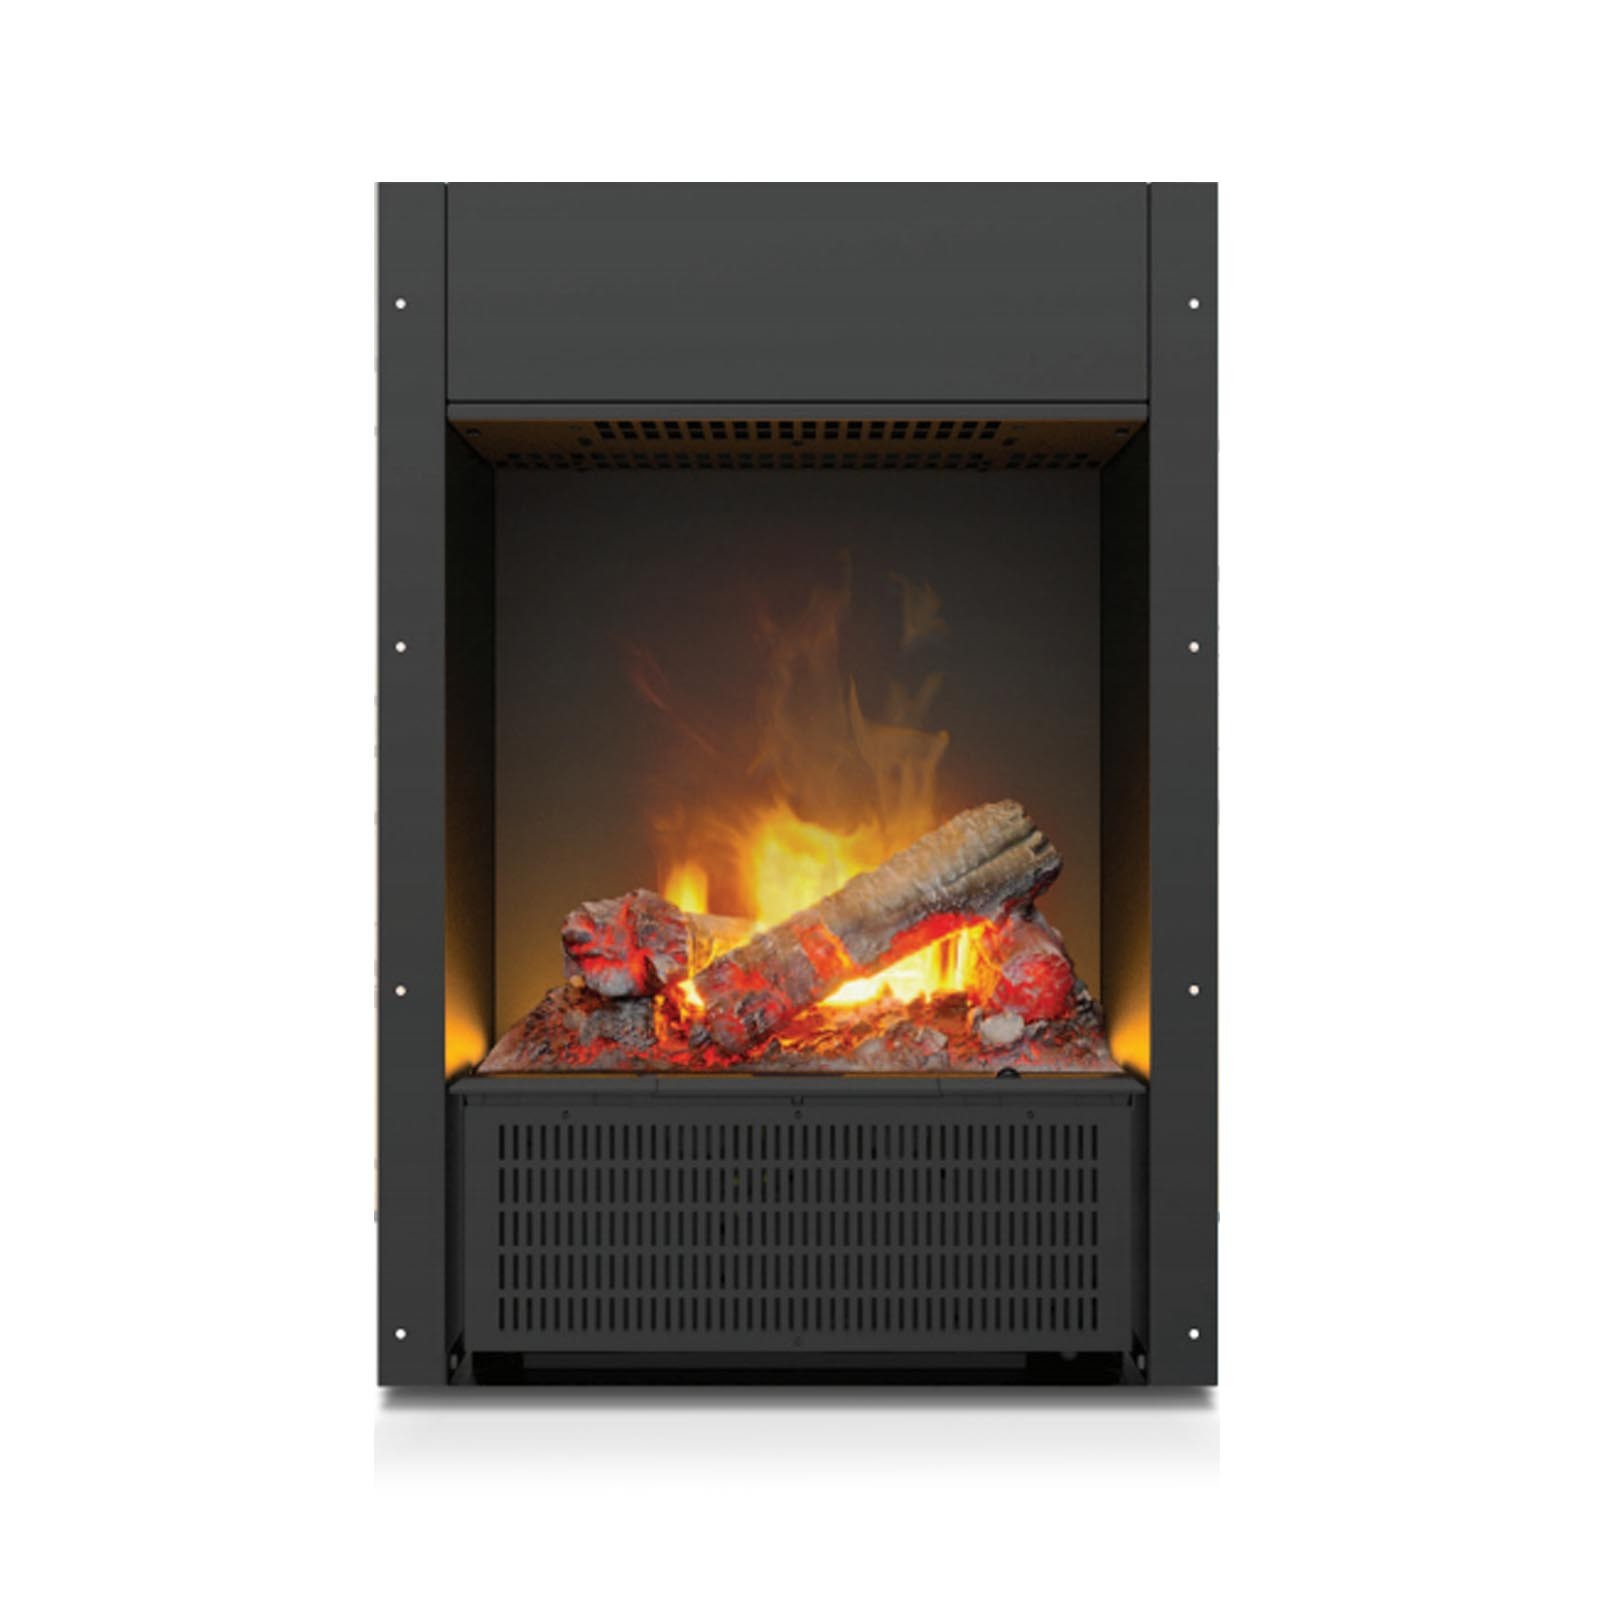 Dimplex Pro Chassis 400 Opti Myst Electric Fire